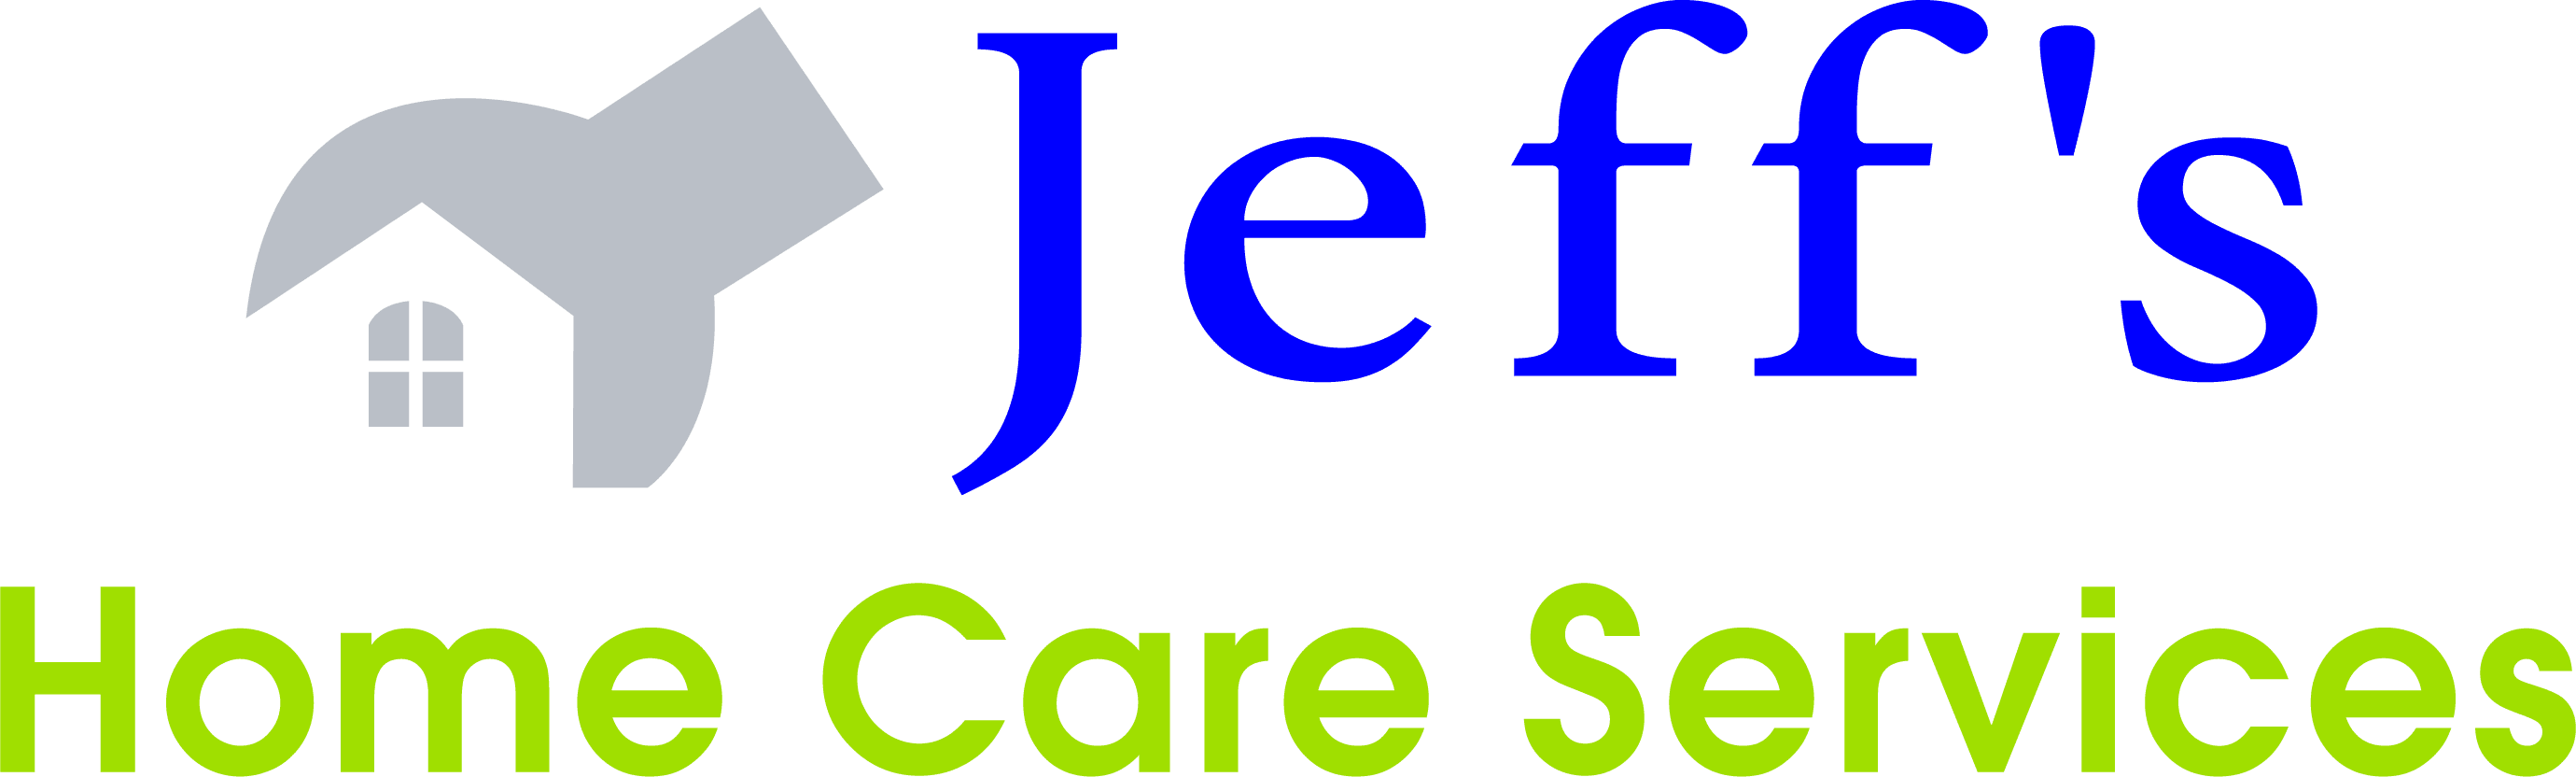 3dec8ba3-2c57-4d82-8a2a-1f117ce2c858Jeffs Home Care logo